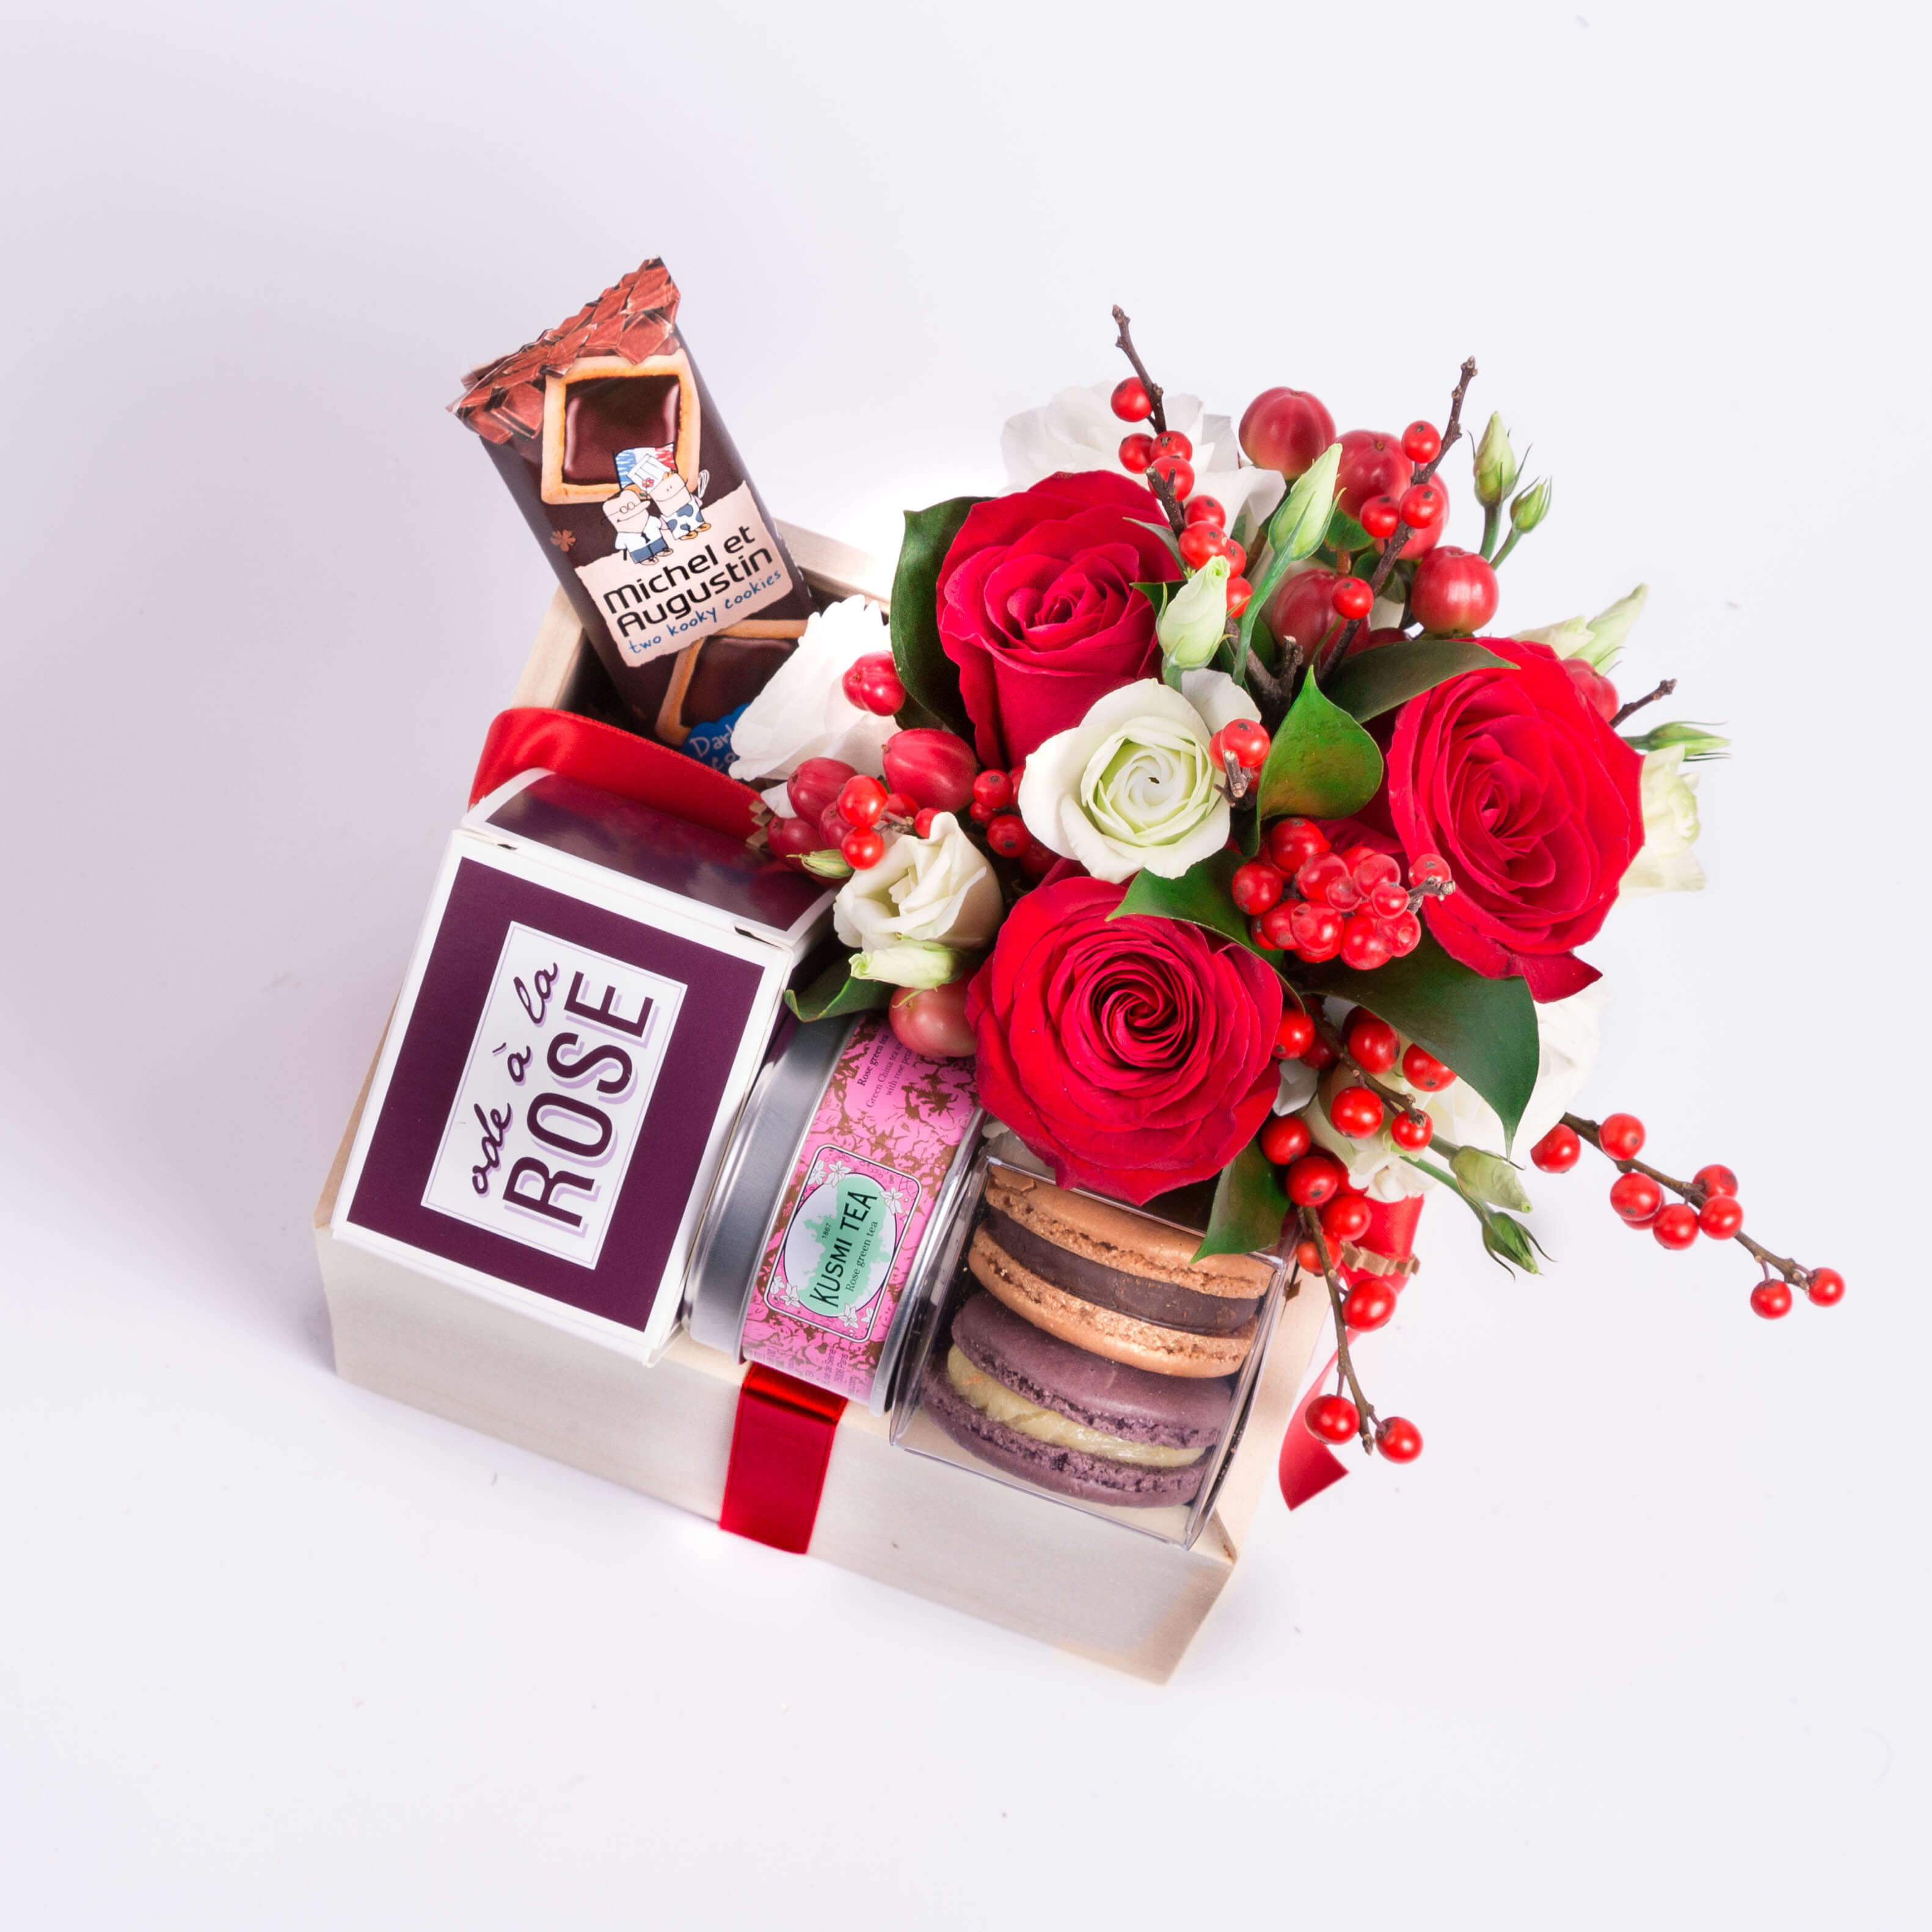 Holiday gift boxes paired with our signature rose de jardin candle and mini bouquet of fresh flowers we think this makes the perfect gift for clients or colleagues izmirmasajfo